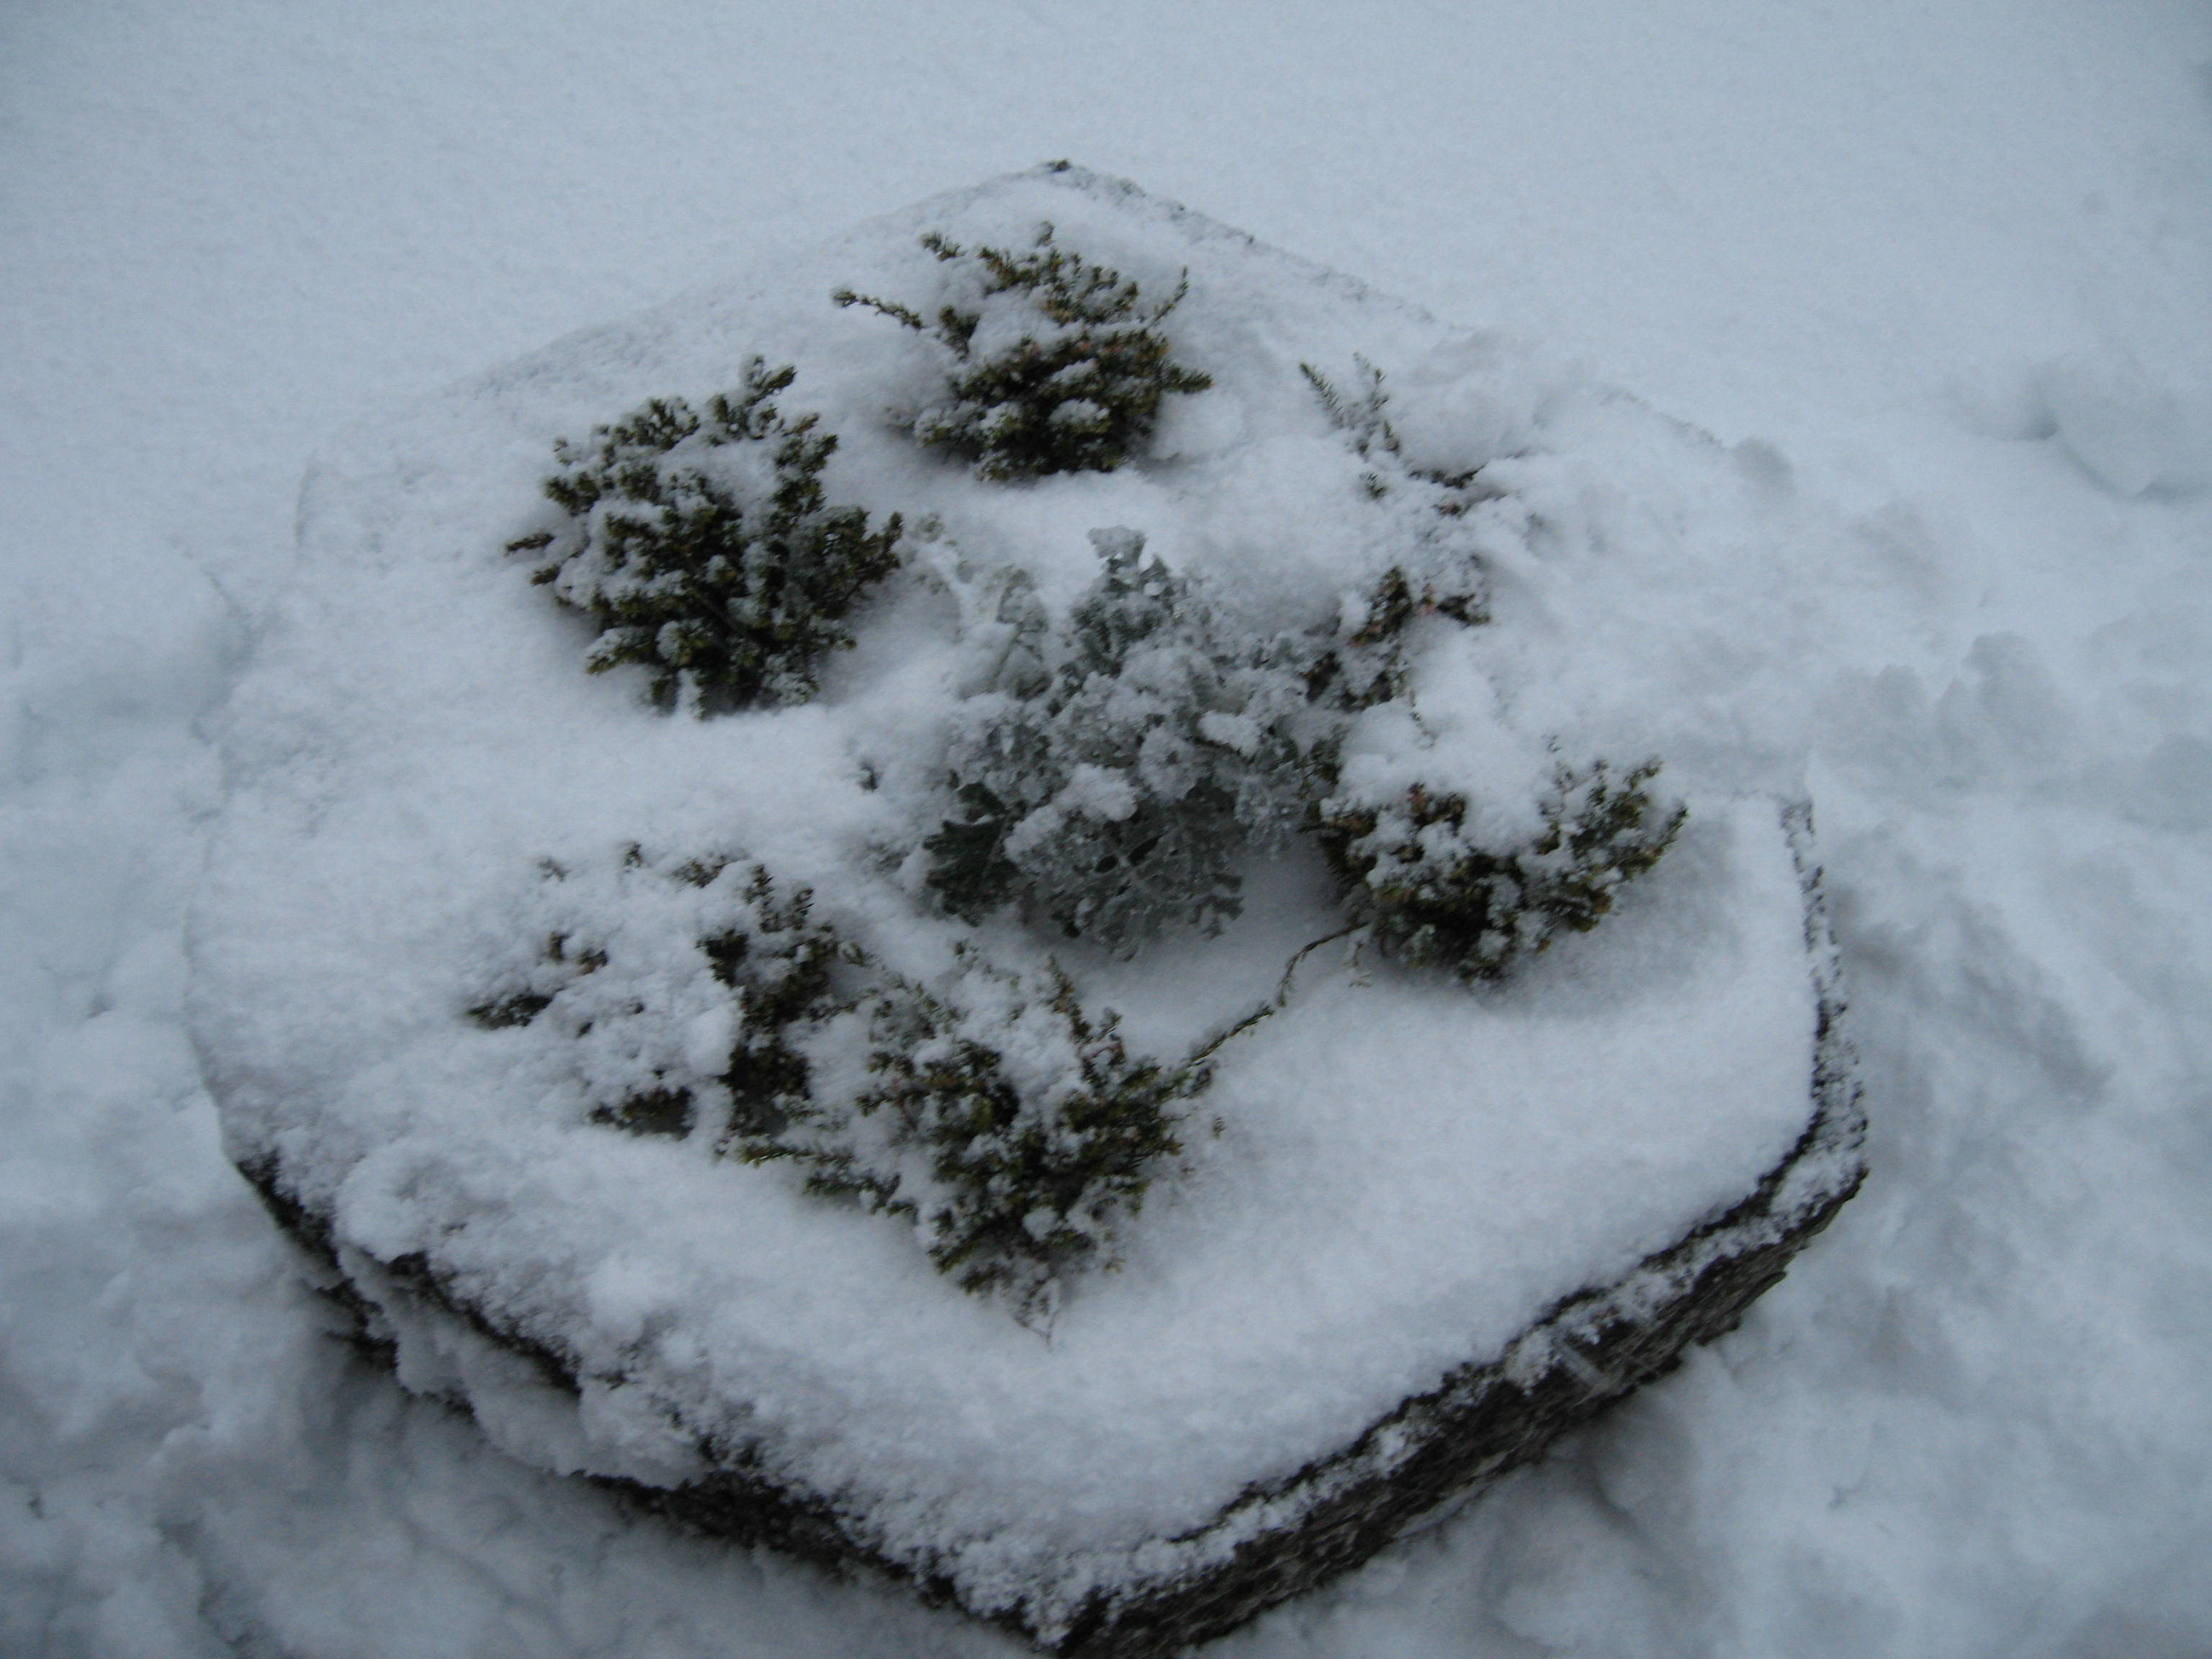 Snow smothered planter